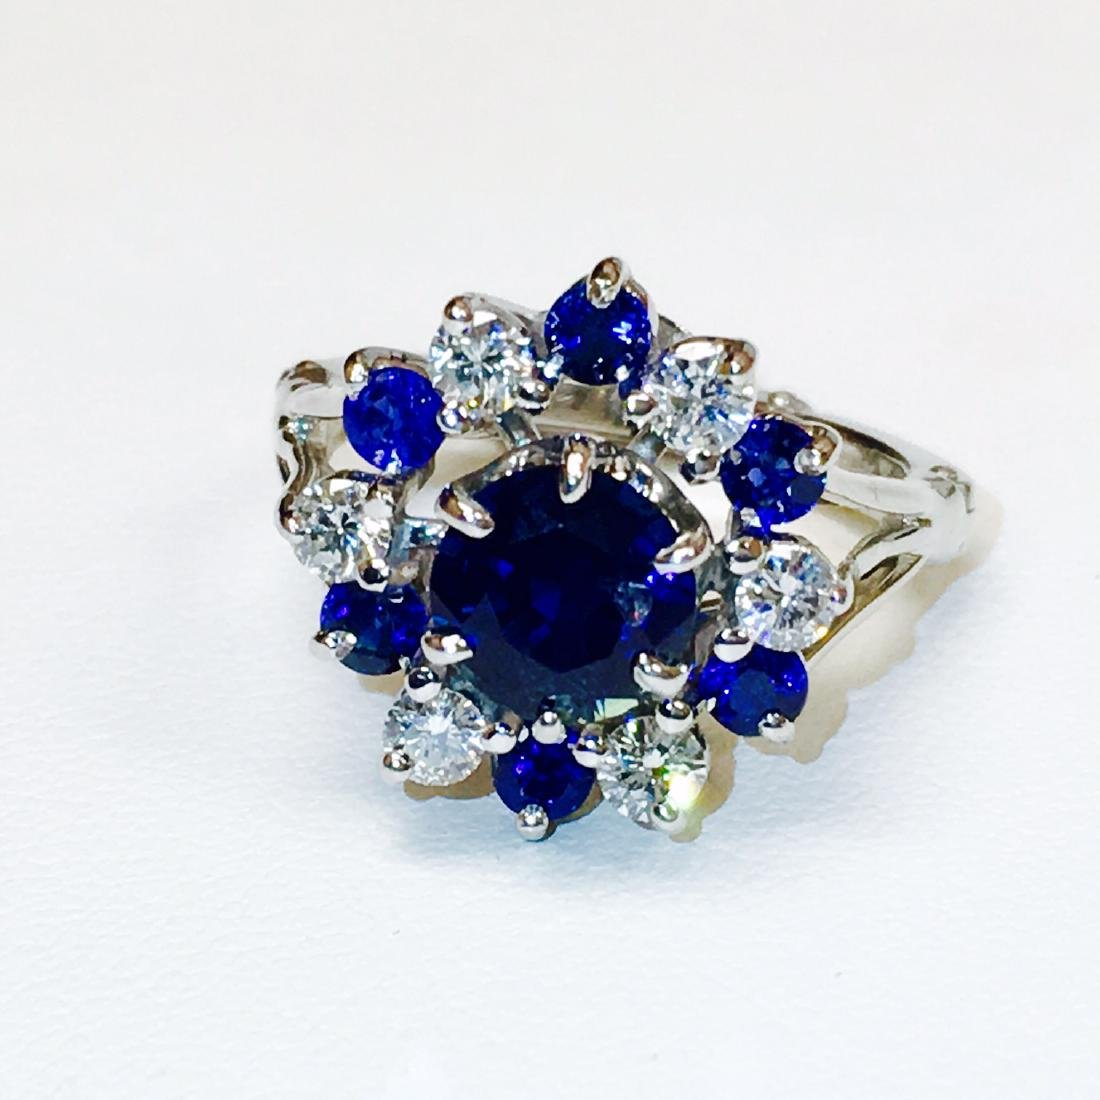 4.10 Carat Natural Blue Sapphire and Diamond Ring